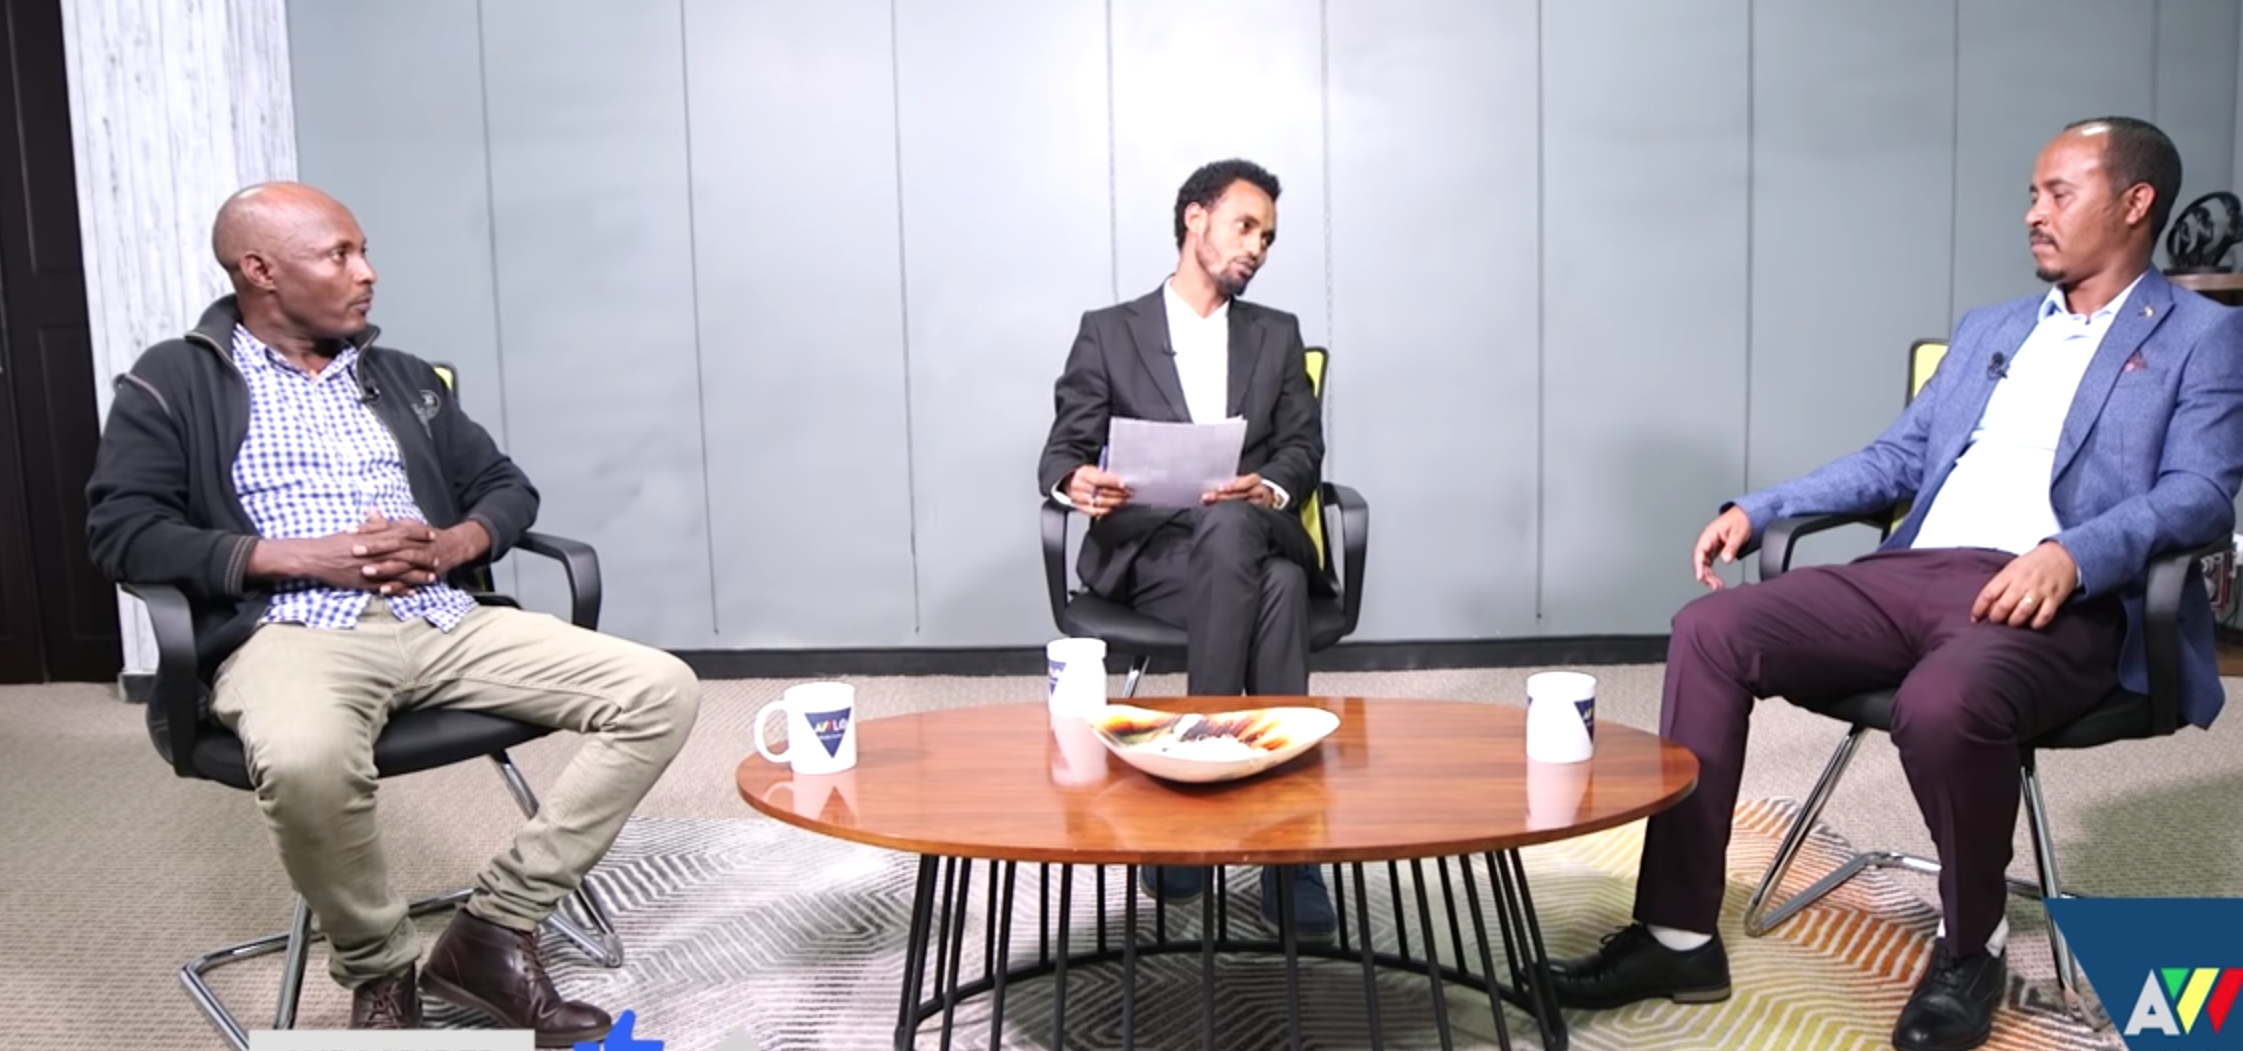 """""""The war is with the people"""": A brief summary of an interview with a recently fired Tigray interim admin official and another Arena official."""